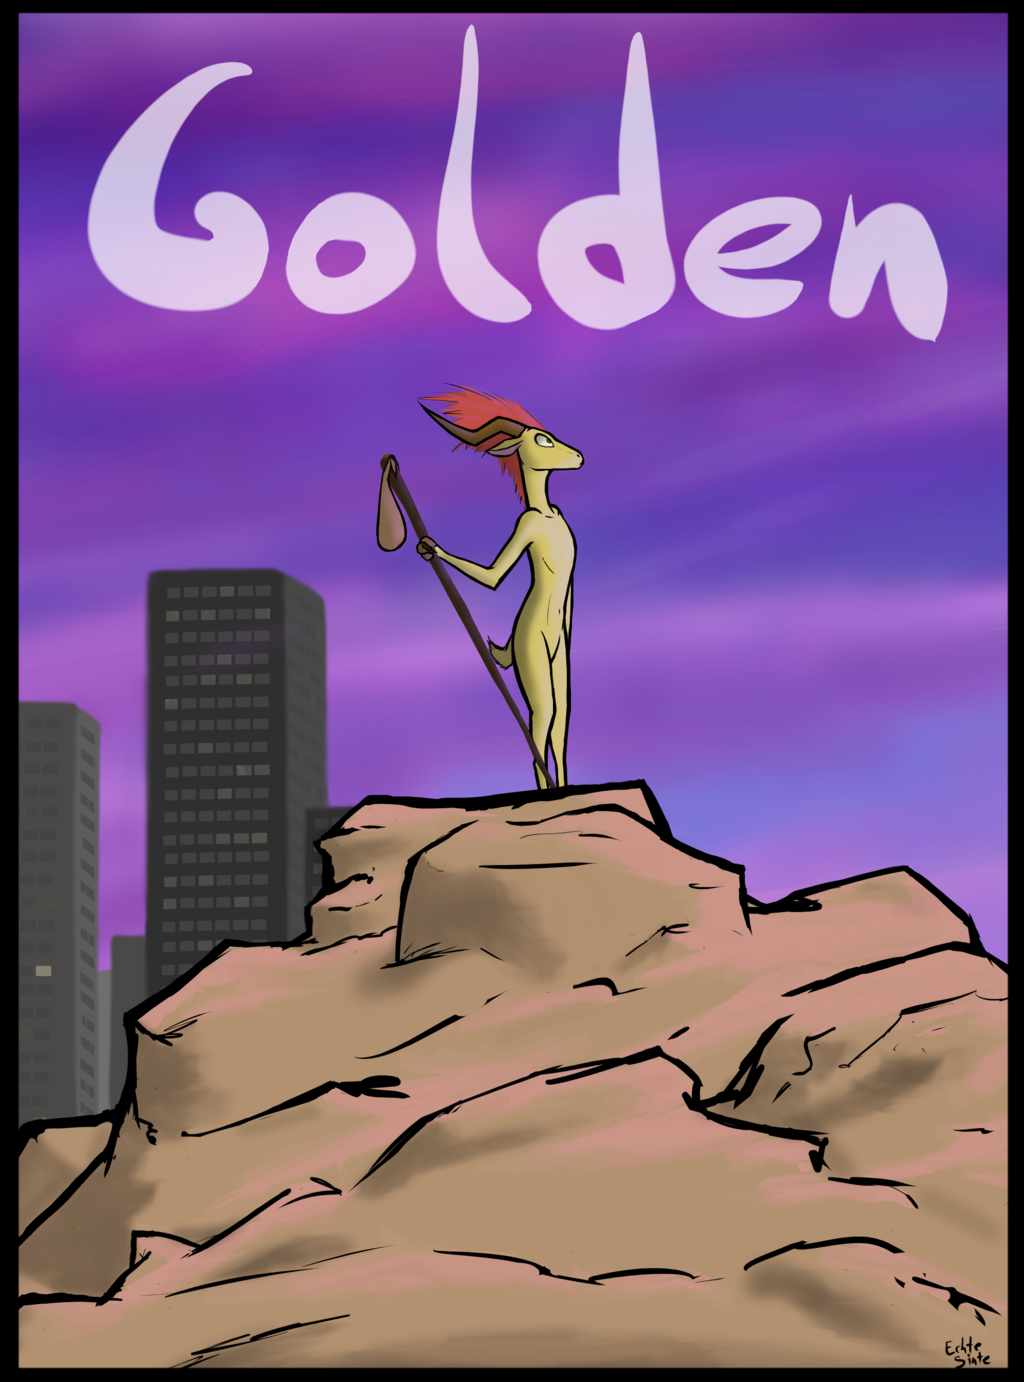 Golden - Page 01 (Comic)